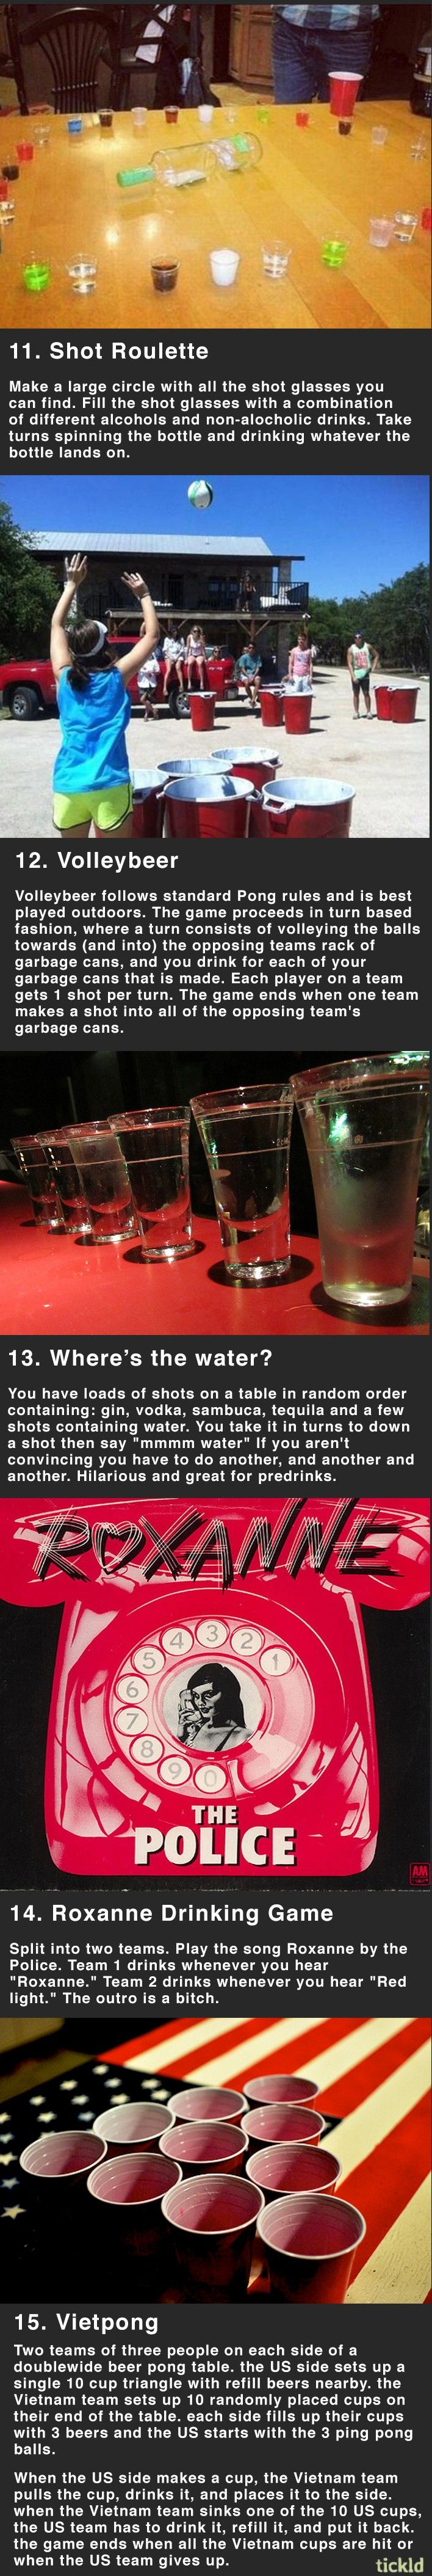 15 fun drinking games